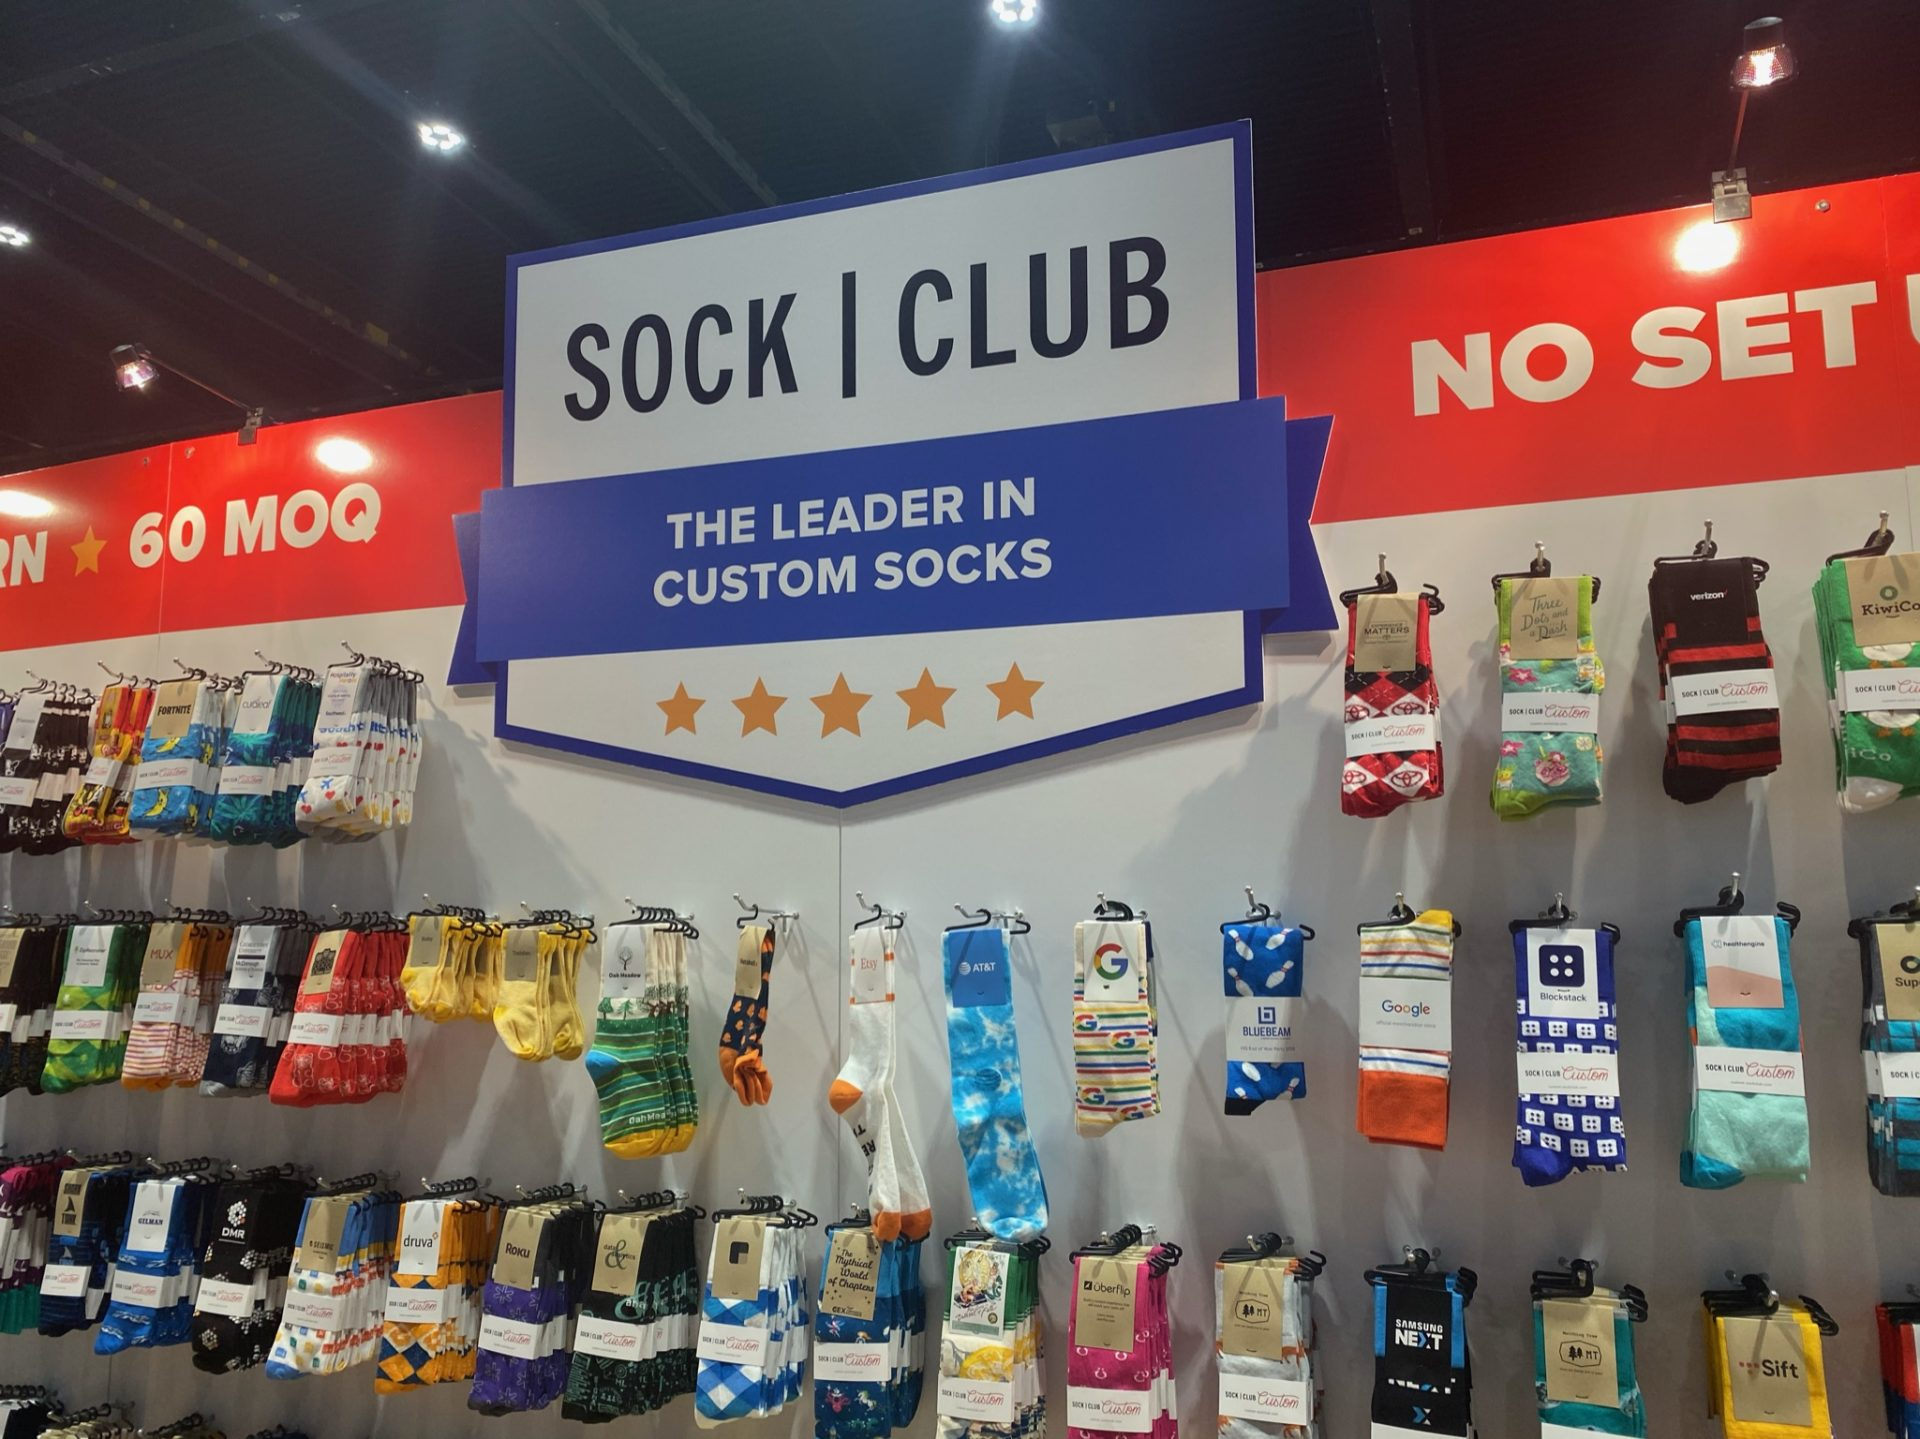 Sock Club Booth ASI Chicago